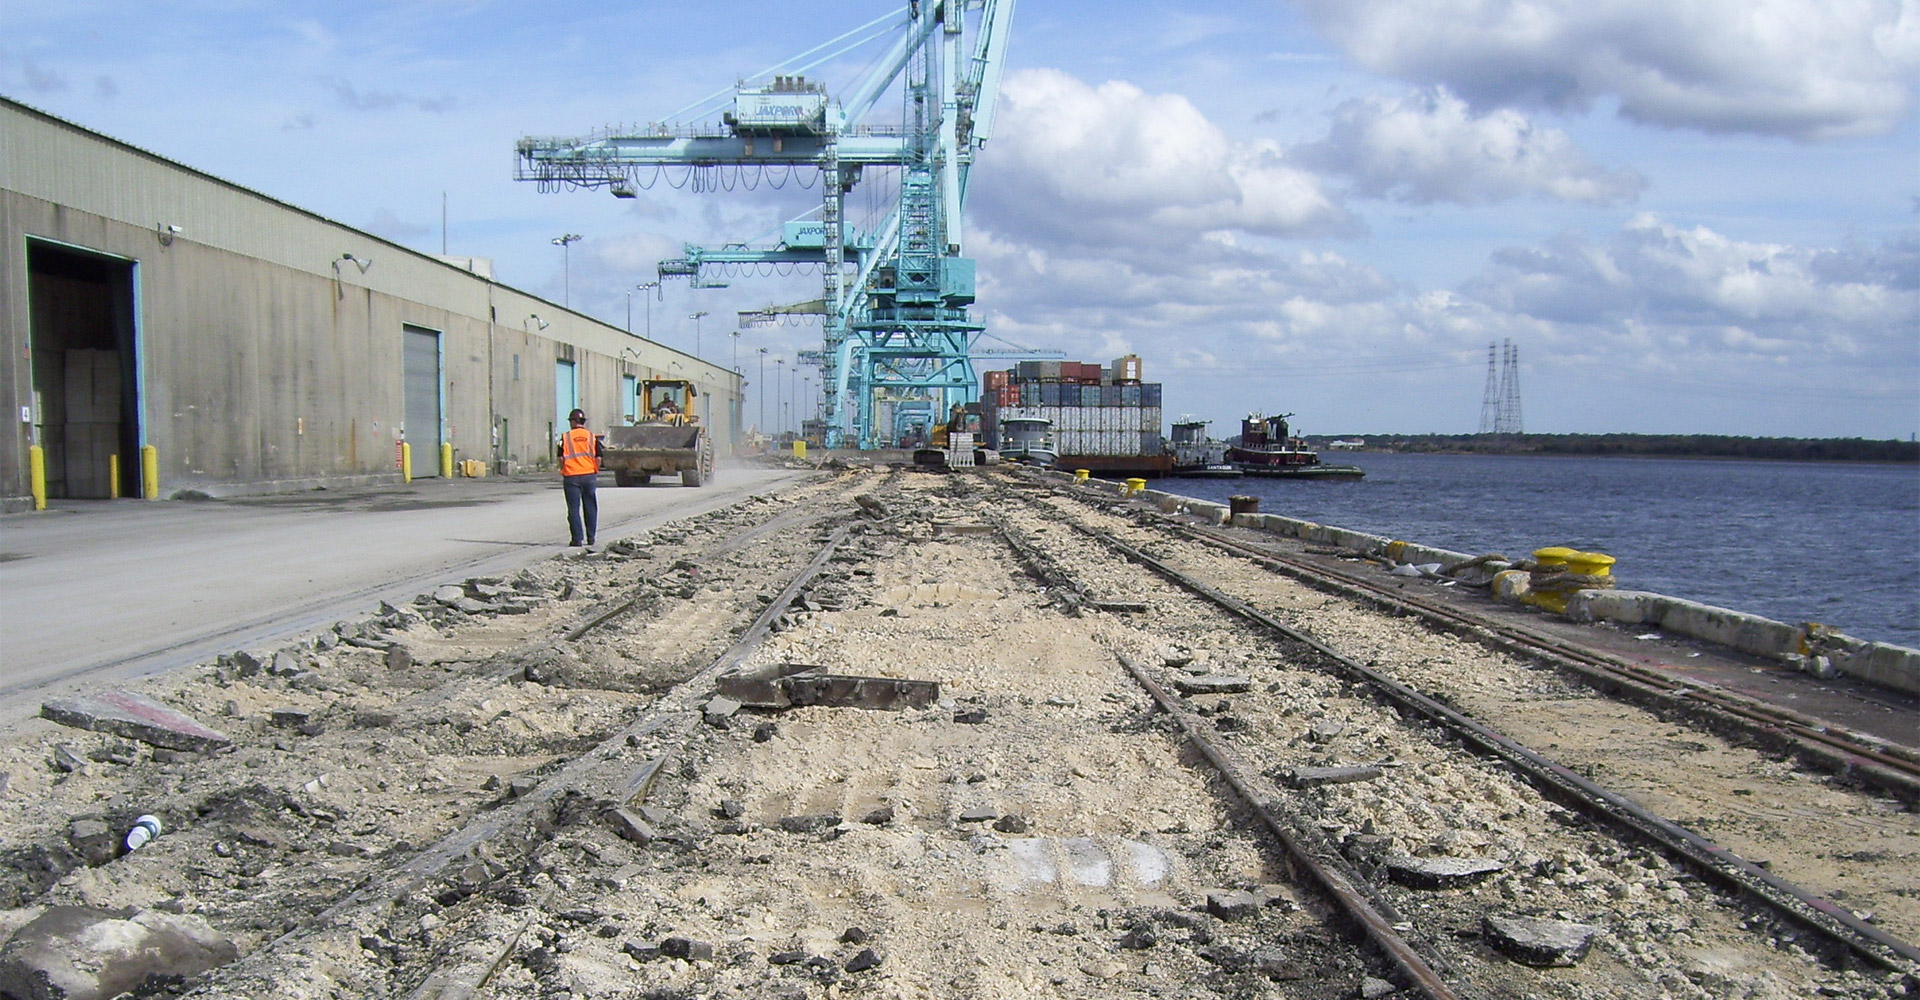 Construction at Blount Island Marine Terminal.